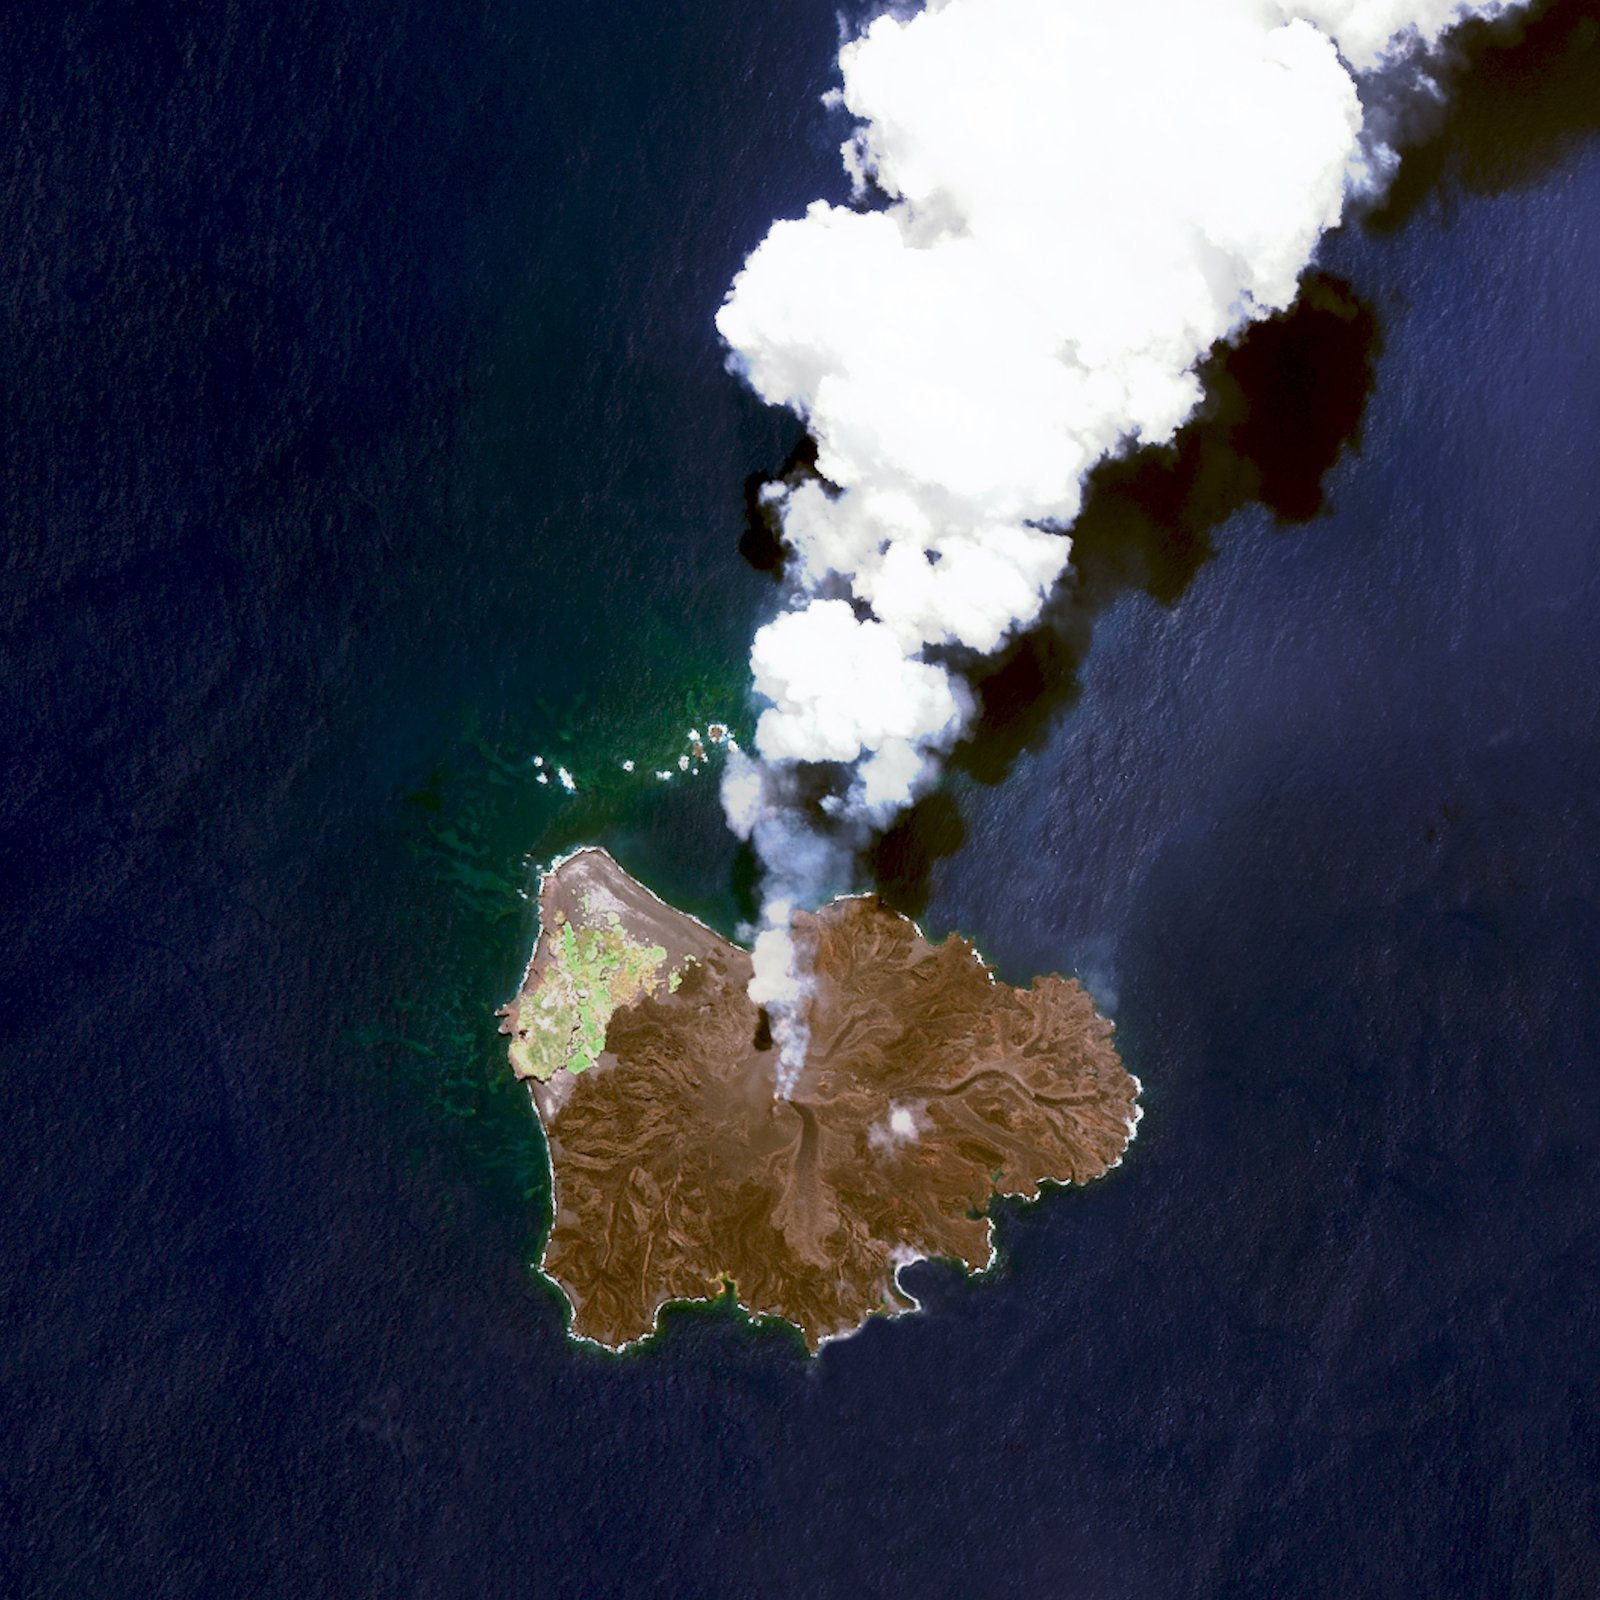 A volcanic island located 584 miles south of Tokyo, Japan, Nishinoshima began to erupt in November 2013, and continued through August 2015.  Reprinted with permission from Overview by Benjamin Grant, copyright (c) 2016. Published by Amphoto Books, a division of Penguin Random House, Inc.   Images (c) 2016 by DigitalGlobe, Inc.   Ever Wondered About the View from Space? by Aileen Kwun